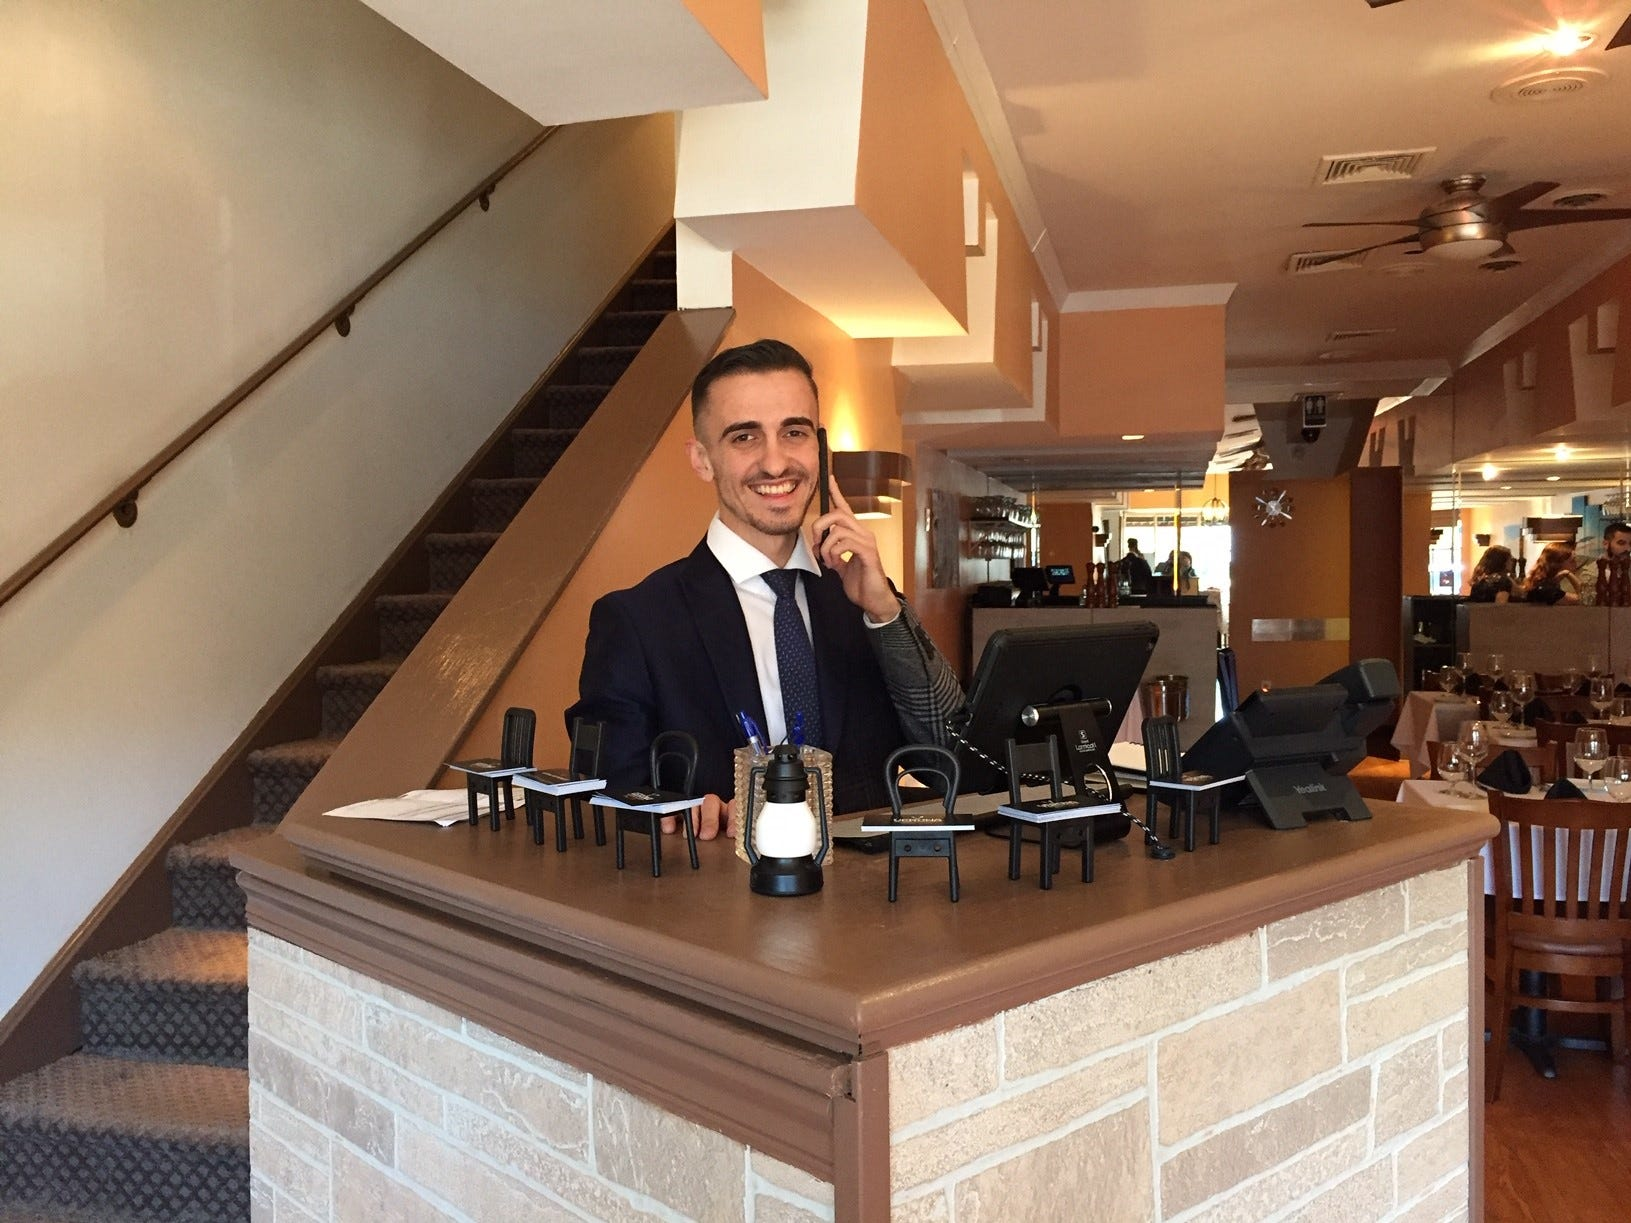 Endrit Bodi , owner of the new Verona Ristorante Italiano, is ready to welcome his first guests.